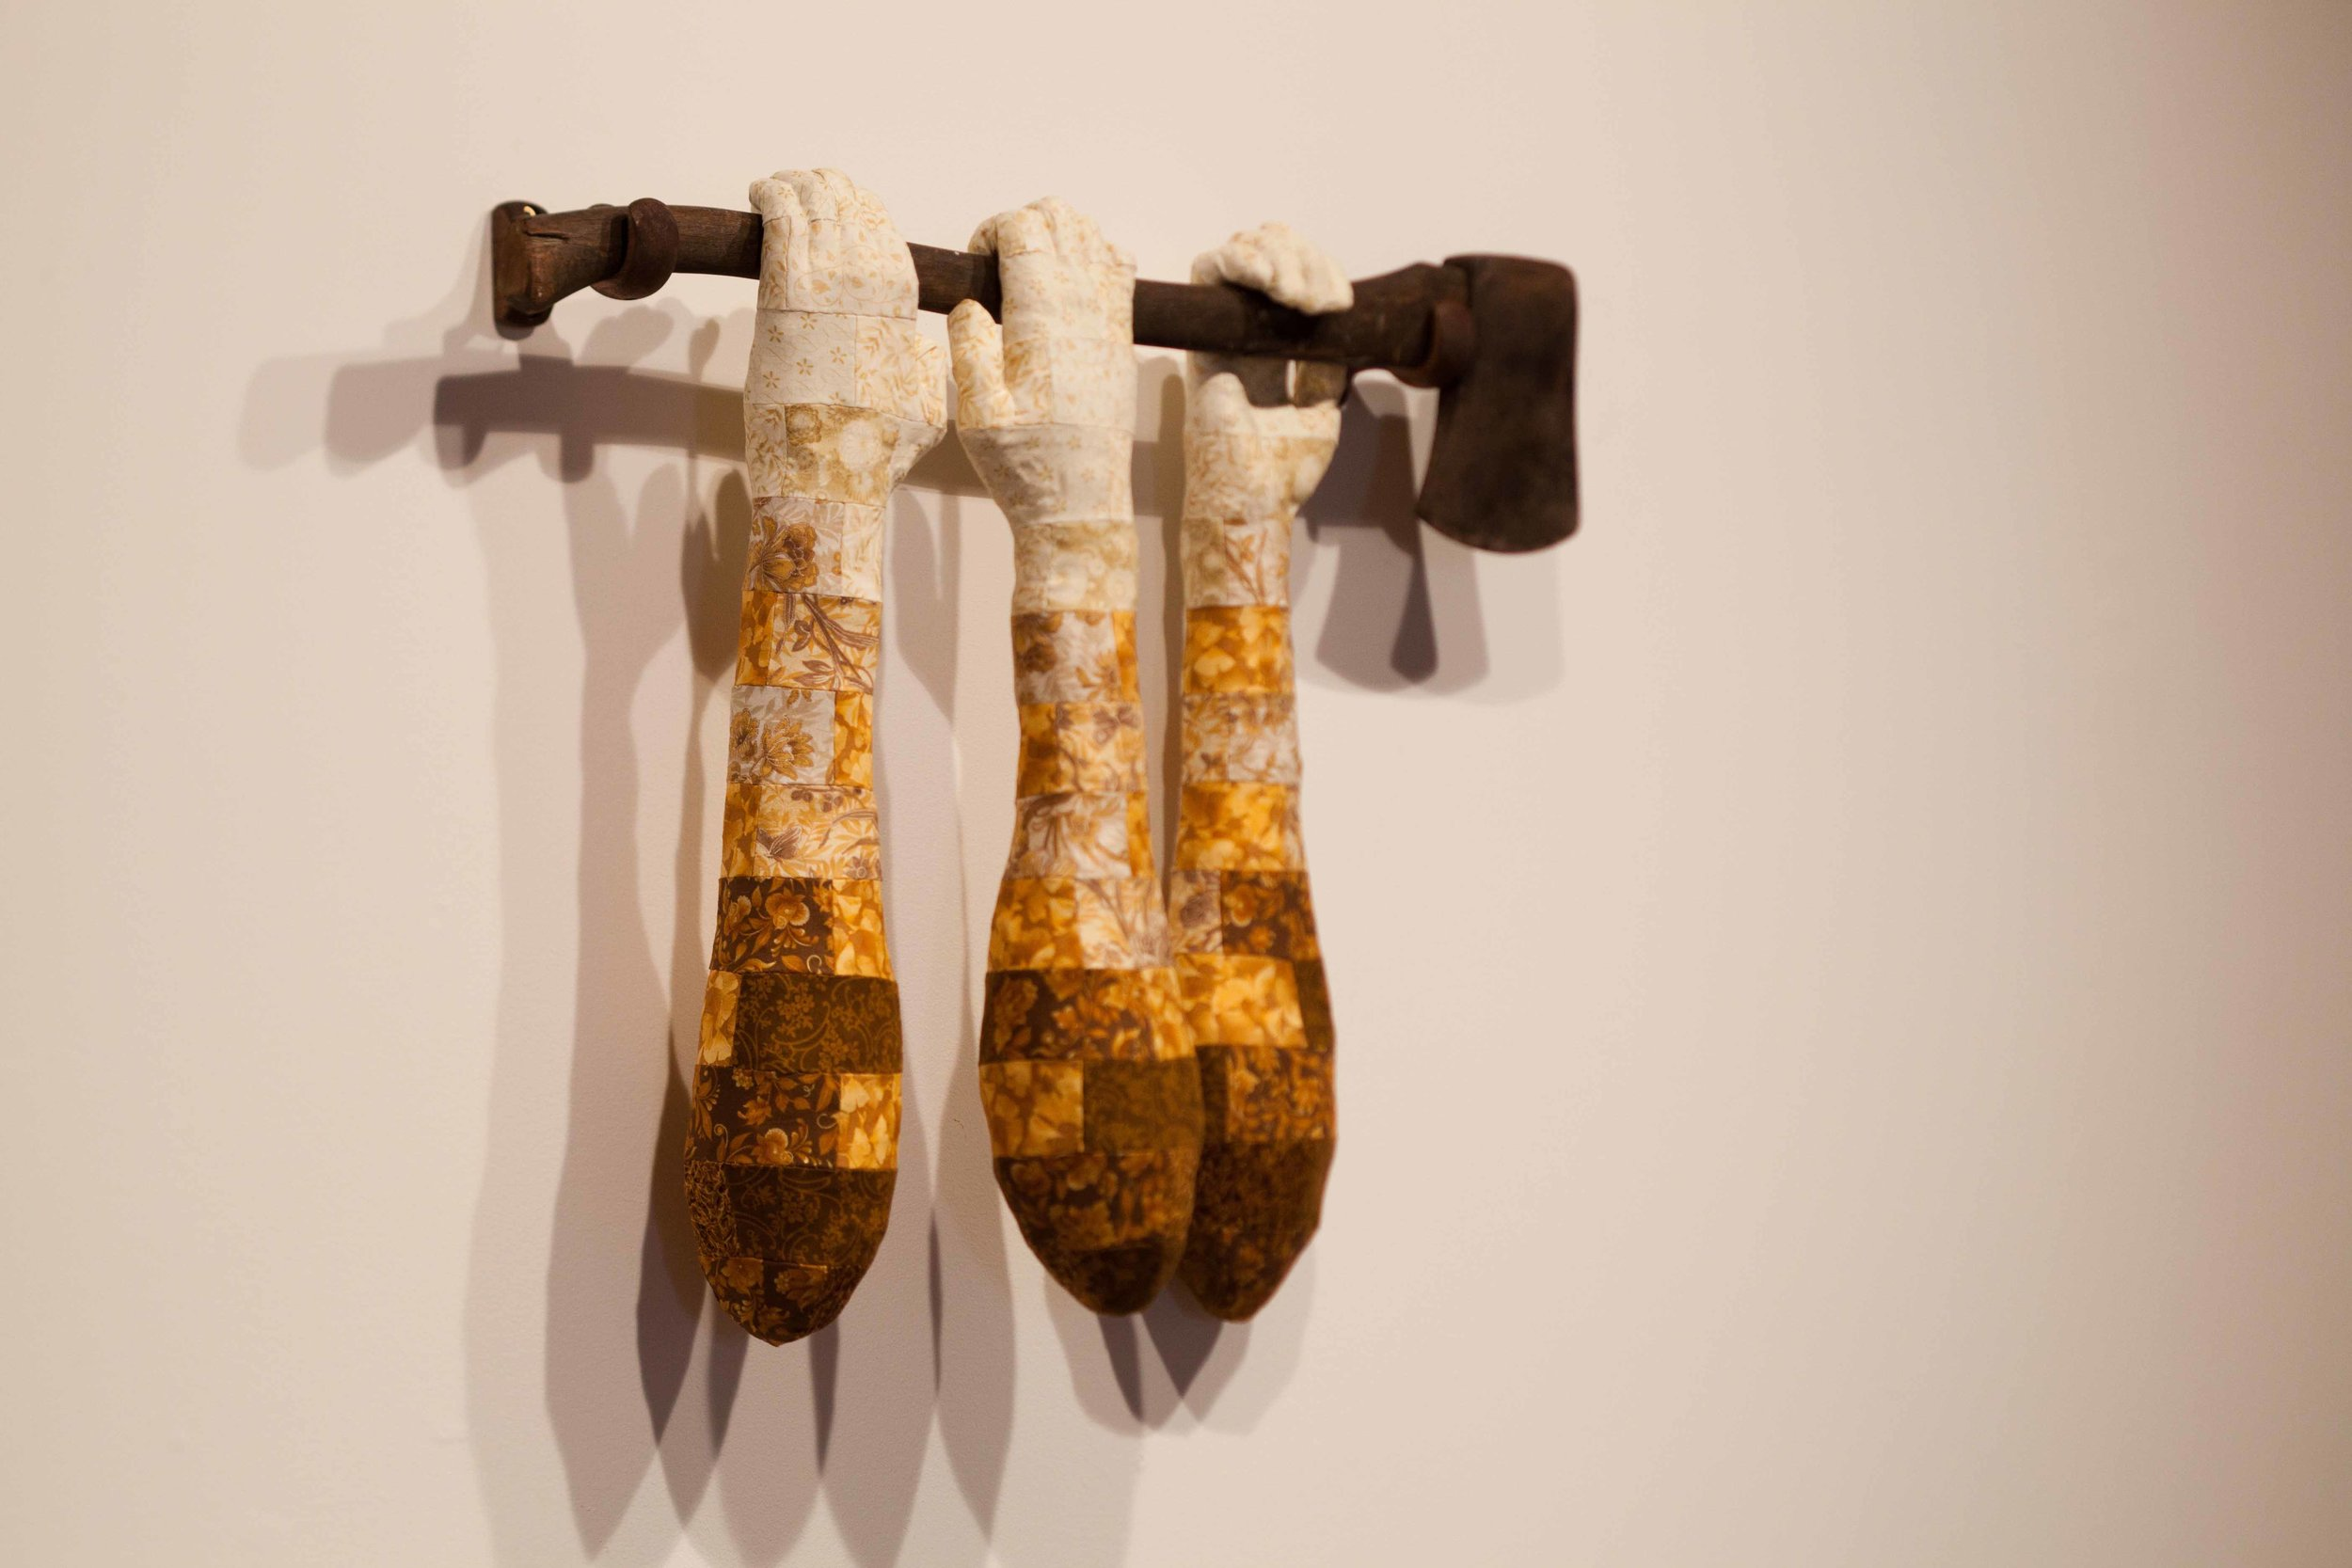 Julia Robinson,  Bloody deeds , 2011, fabric, thread, axe, plaster, foam, timber, 65 x 80 x 20cm